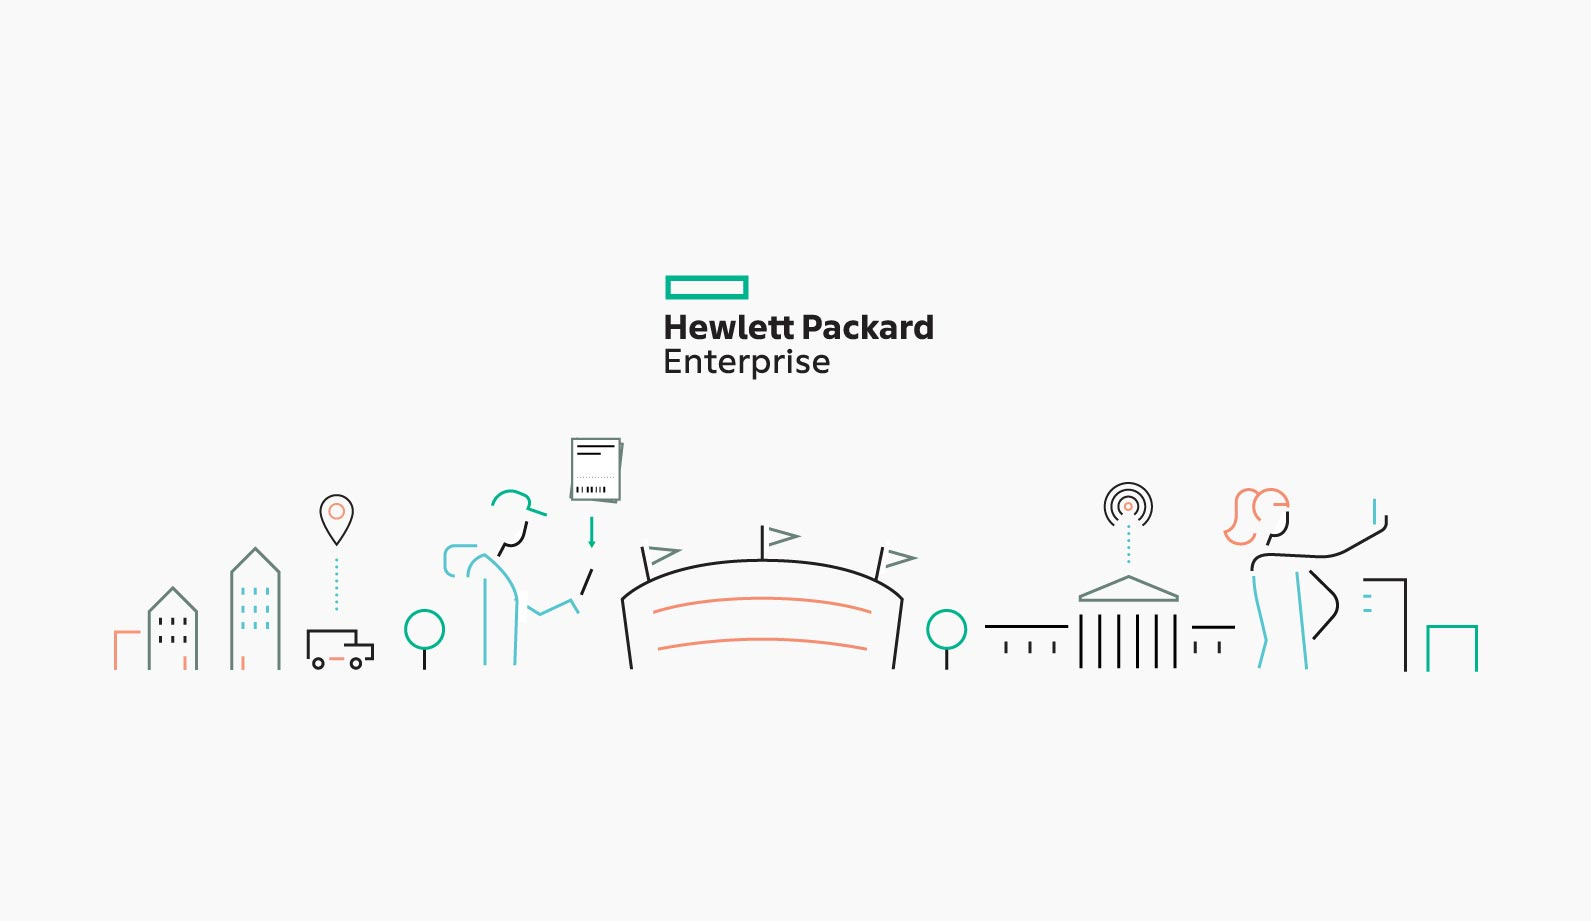 Hewlett Packard Enterprise - Intelligent Venues